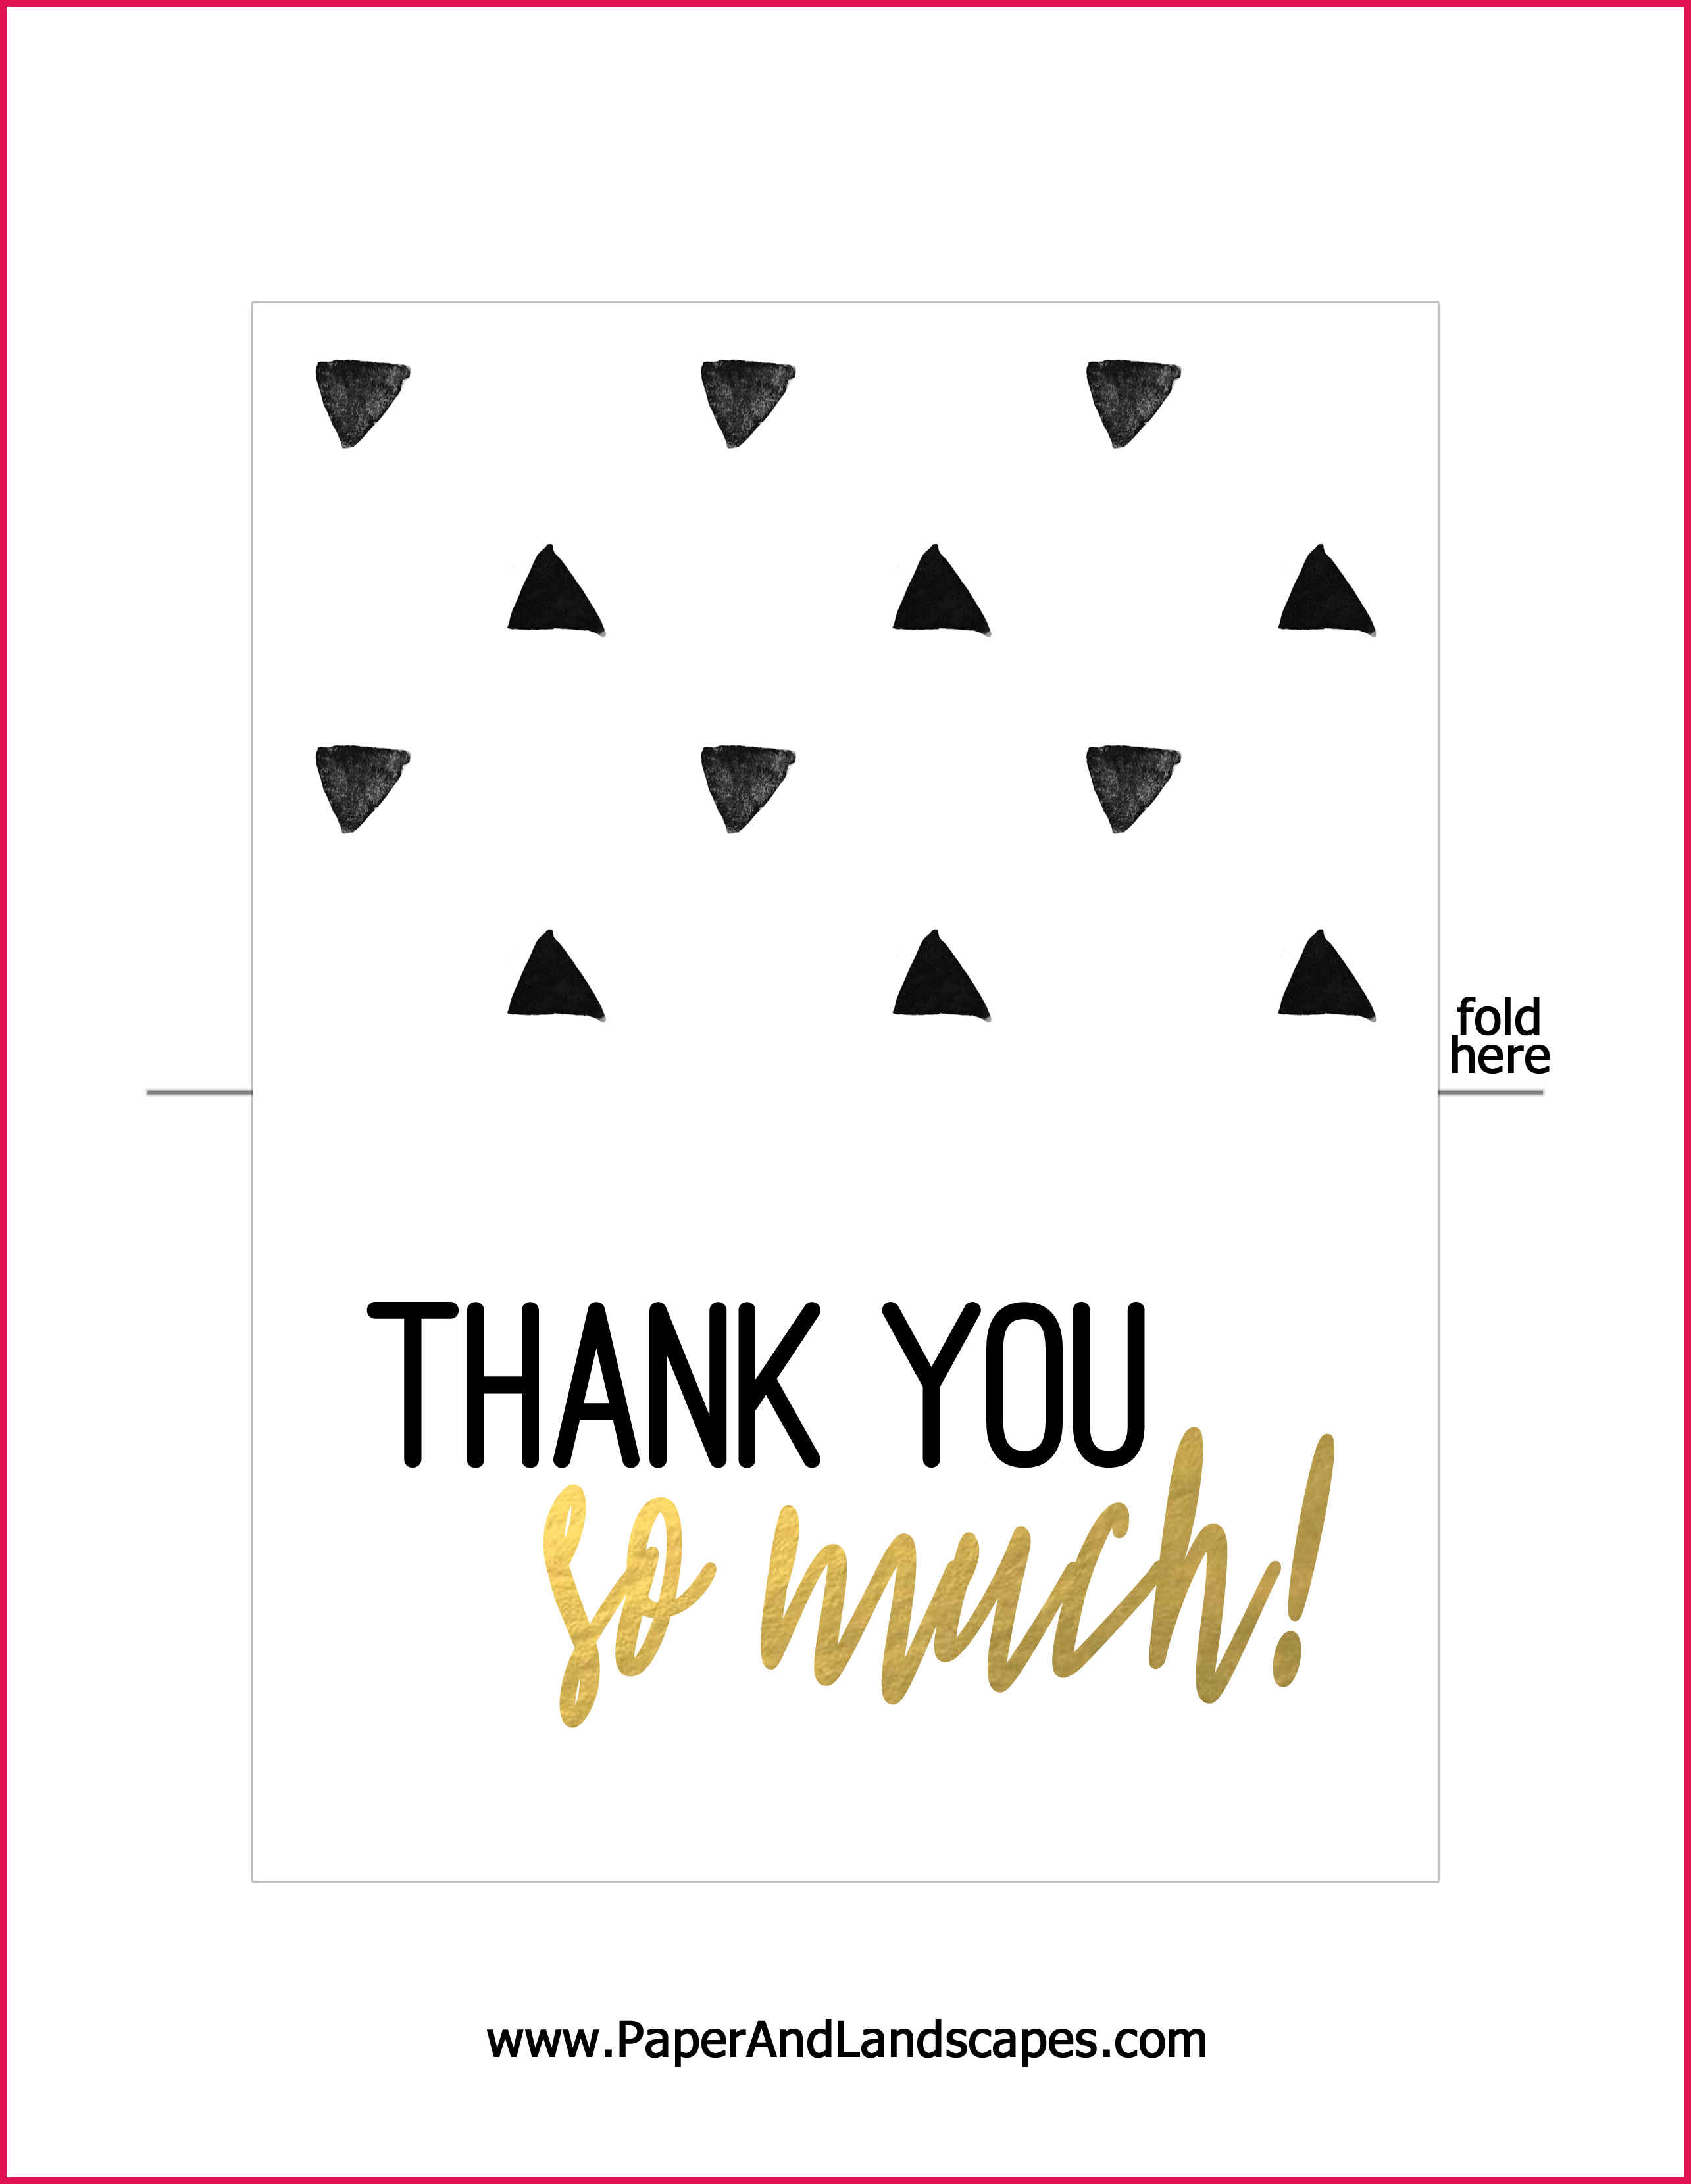 Free Printable Thank You Cards | Sop Examples - Free Printable Custom Thank You Cards